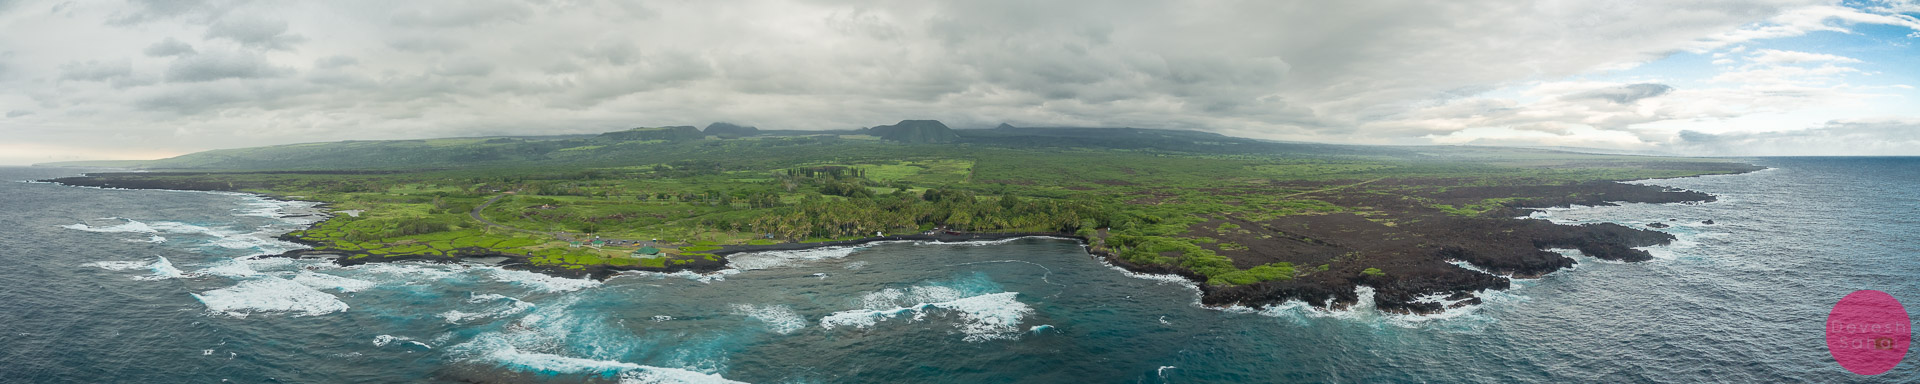 aerial panorama of the punaluu black sand beach